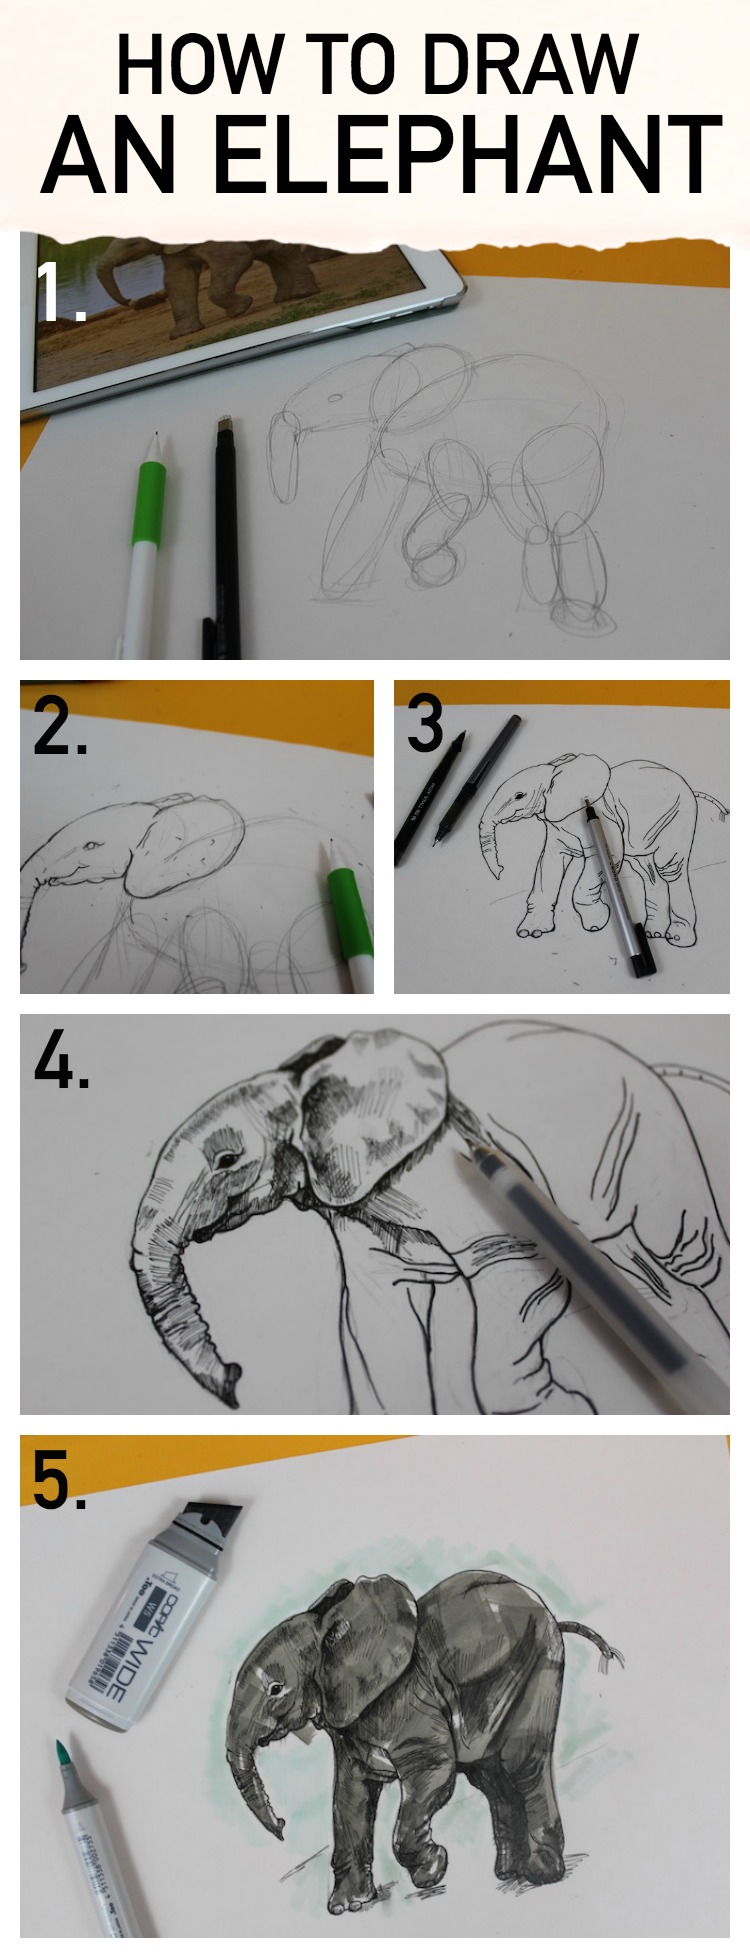 Learn how to draw an elephant with Craftsy's step-by-step tutorial